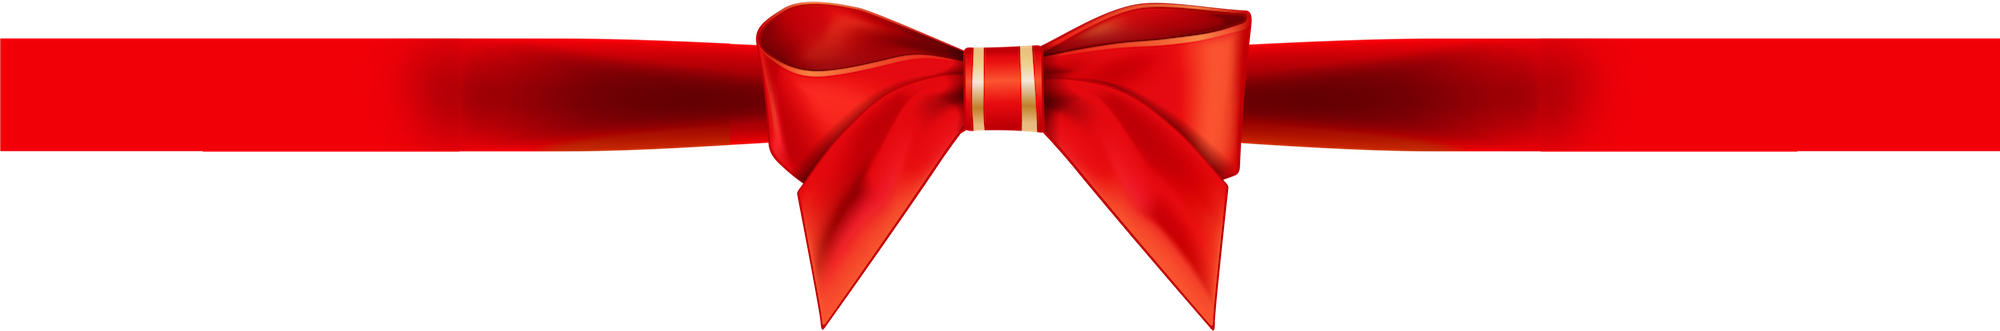 ribbon copy